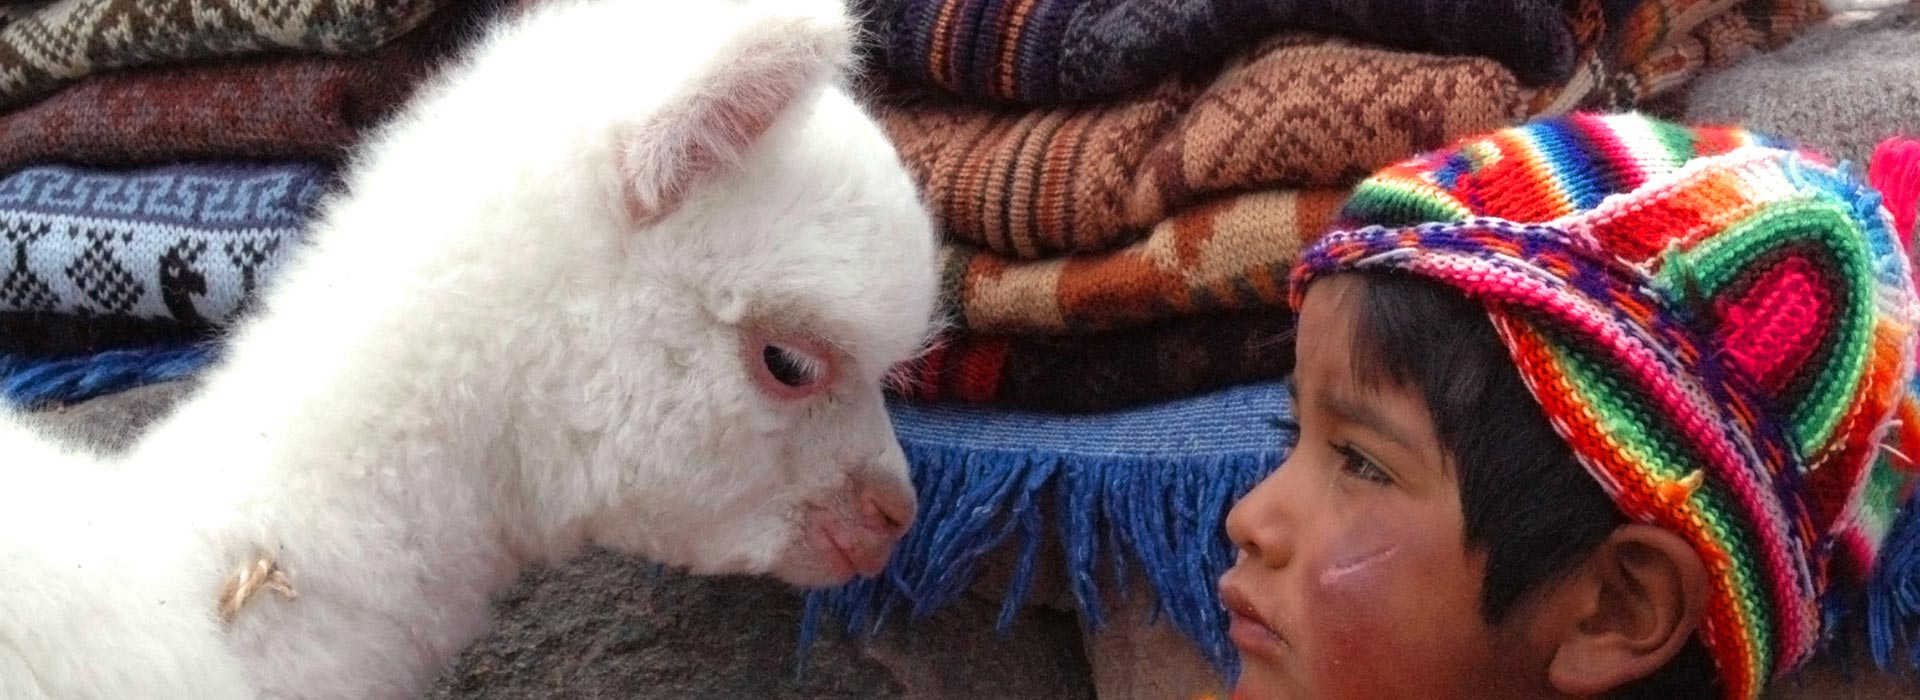 Unidentified Quechua little boy in traditional clothing with baby llama in Arequipa